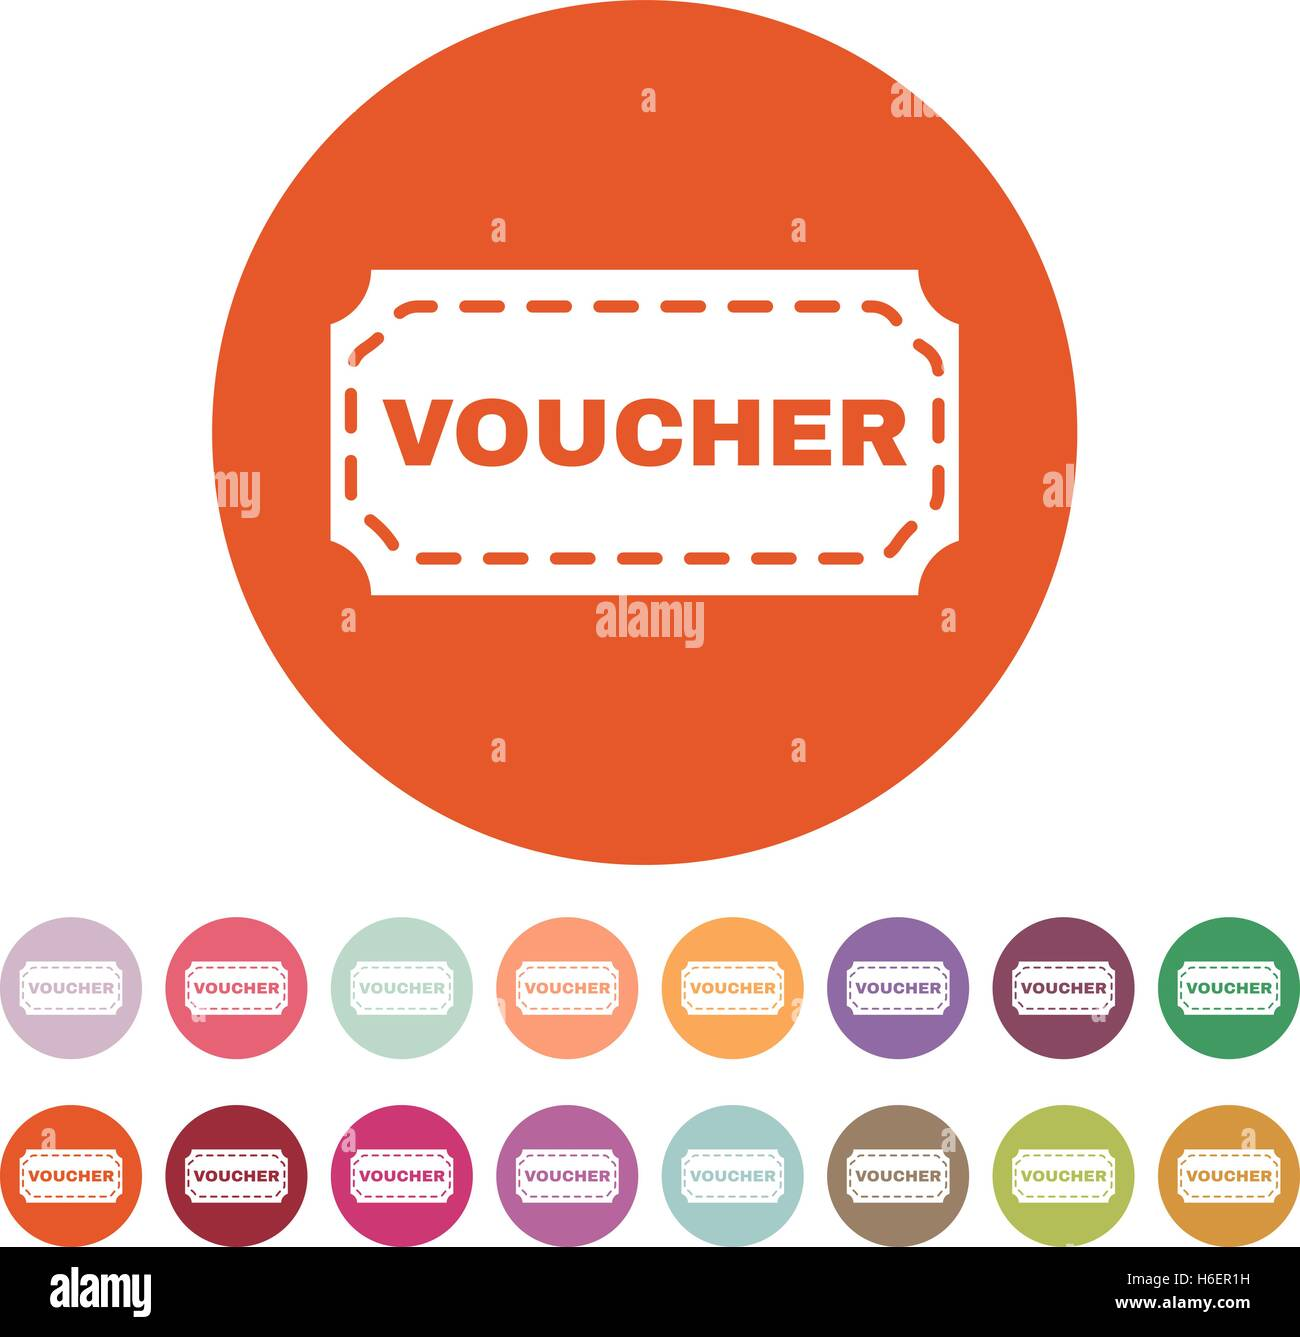 The Voucher Icon Coupon And Gift Offer Discount Symbol Flat